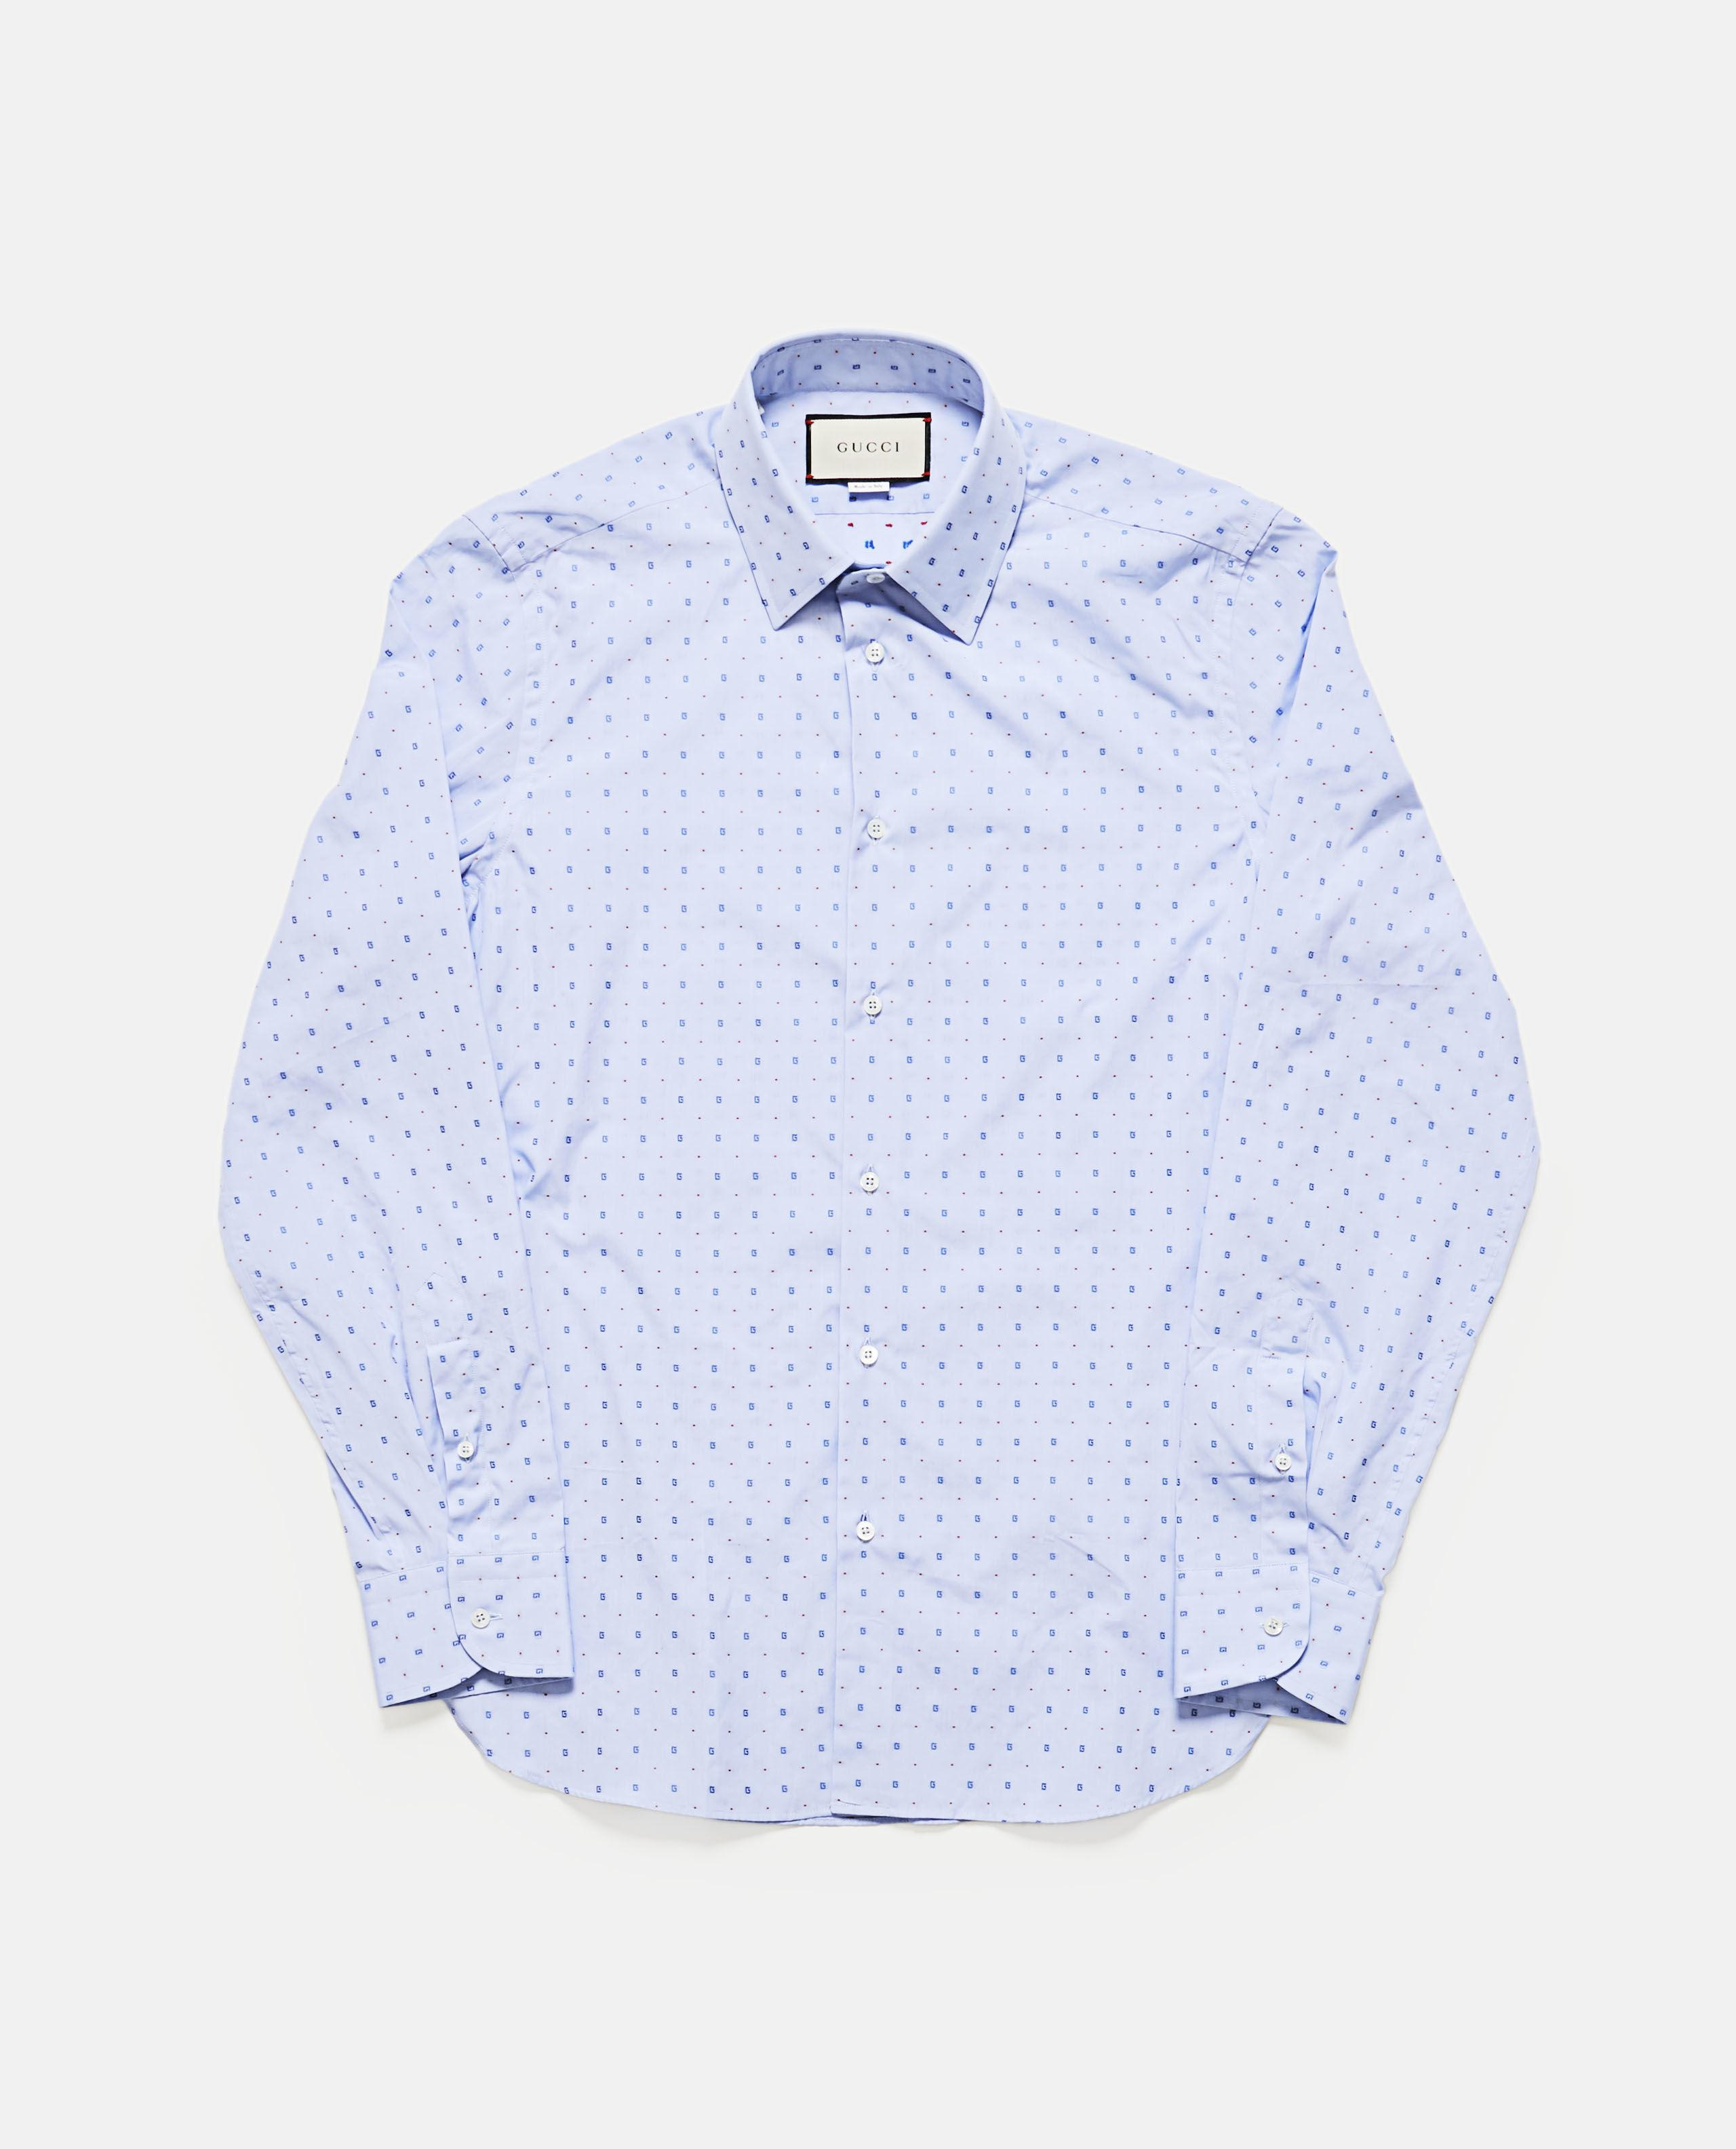 d296540da3e Lyst - Gucci G Dot Fil Coupé Oxford Shirt in Blue for Men